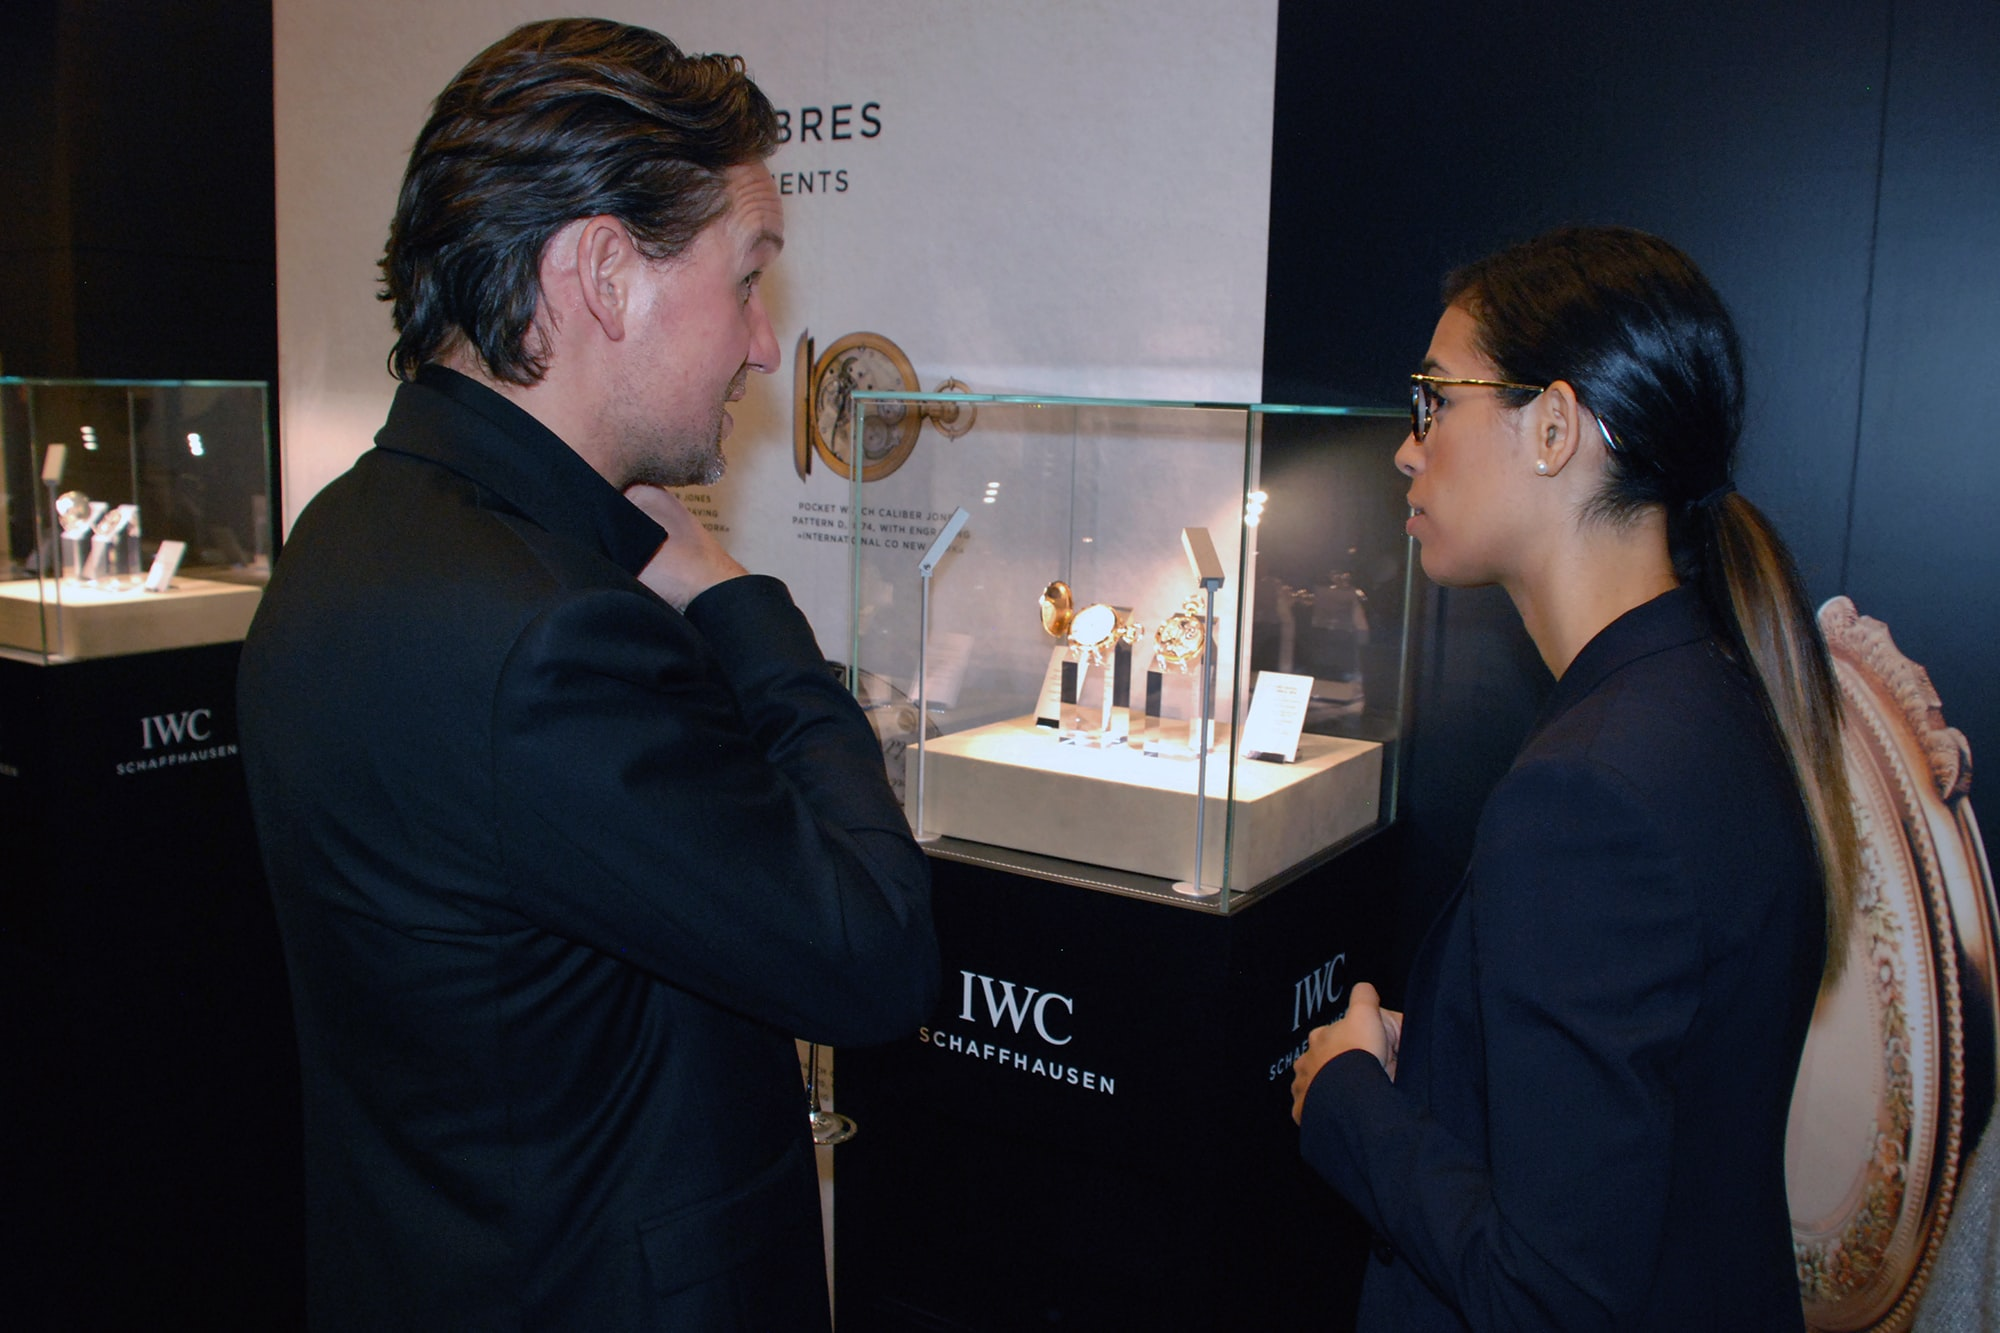 Photo Report: HODINKEE And IWC Celebrate The Portugieser Hand-Wound Tourbillion Edition 'D.H. Craig USA' In New York Photo Report: HODINKEE And IWC Celebrate The Portugieser Hand-Wound Tourbillion Edition 'D.H. Craig USA' In New York 0047 copy